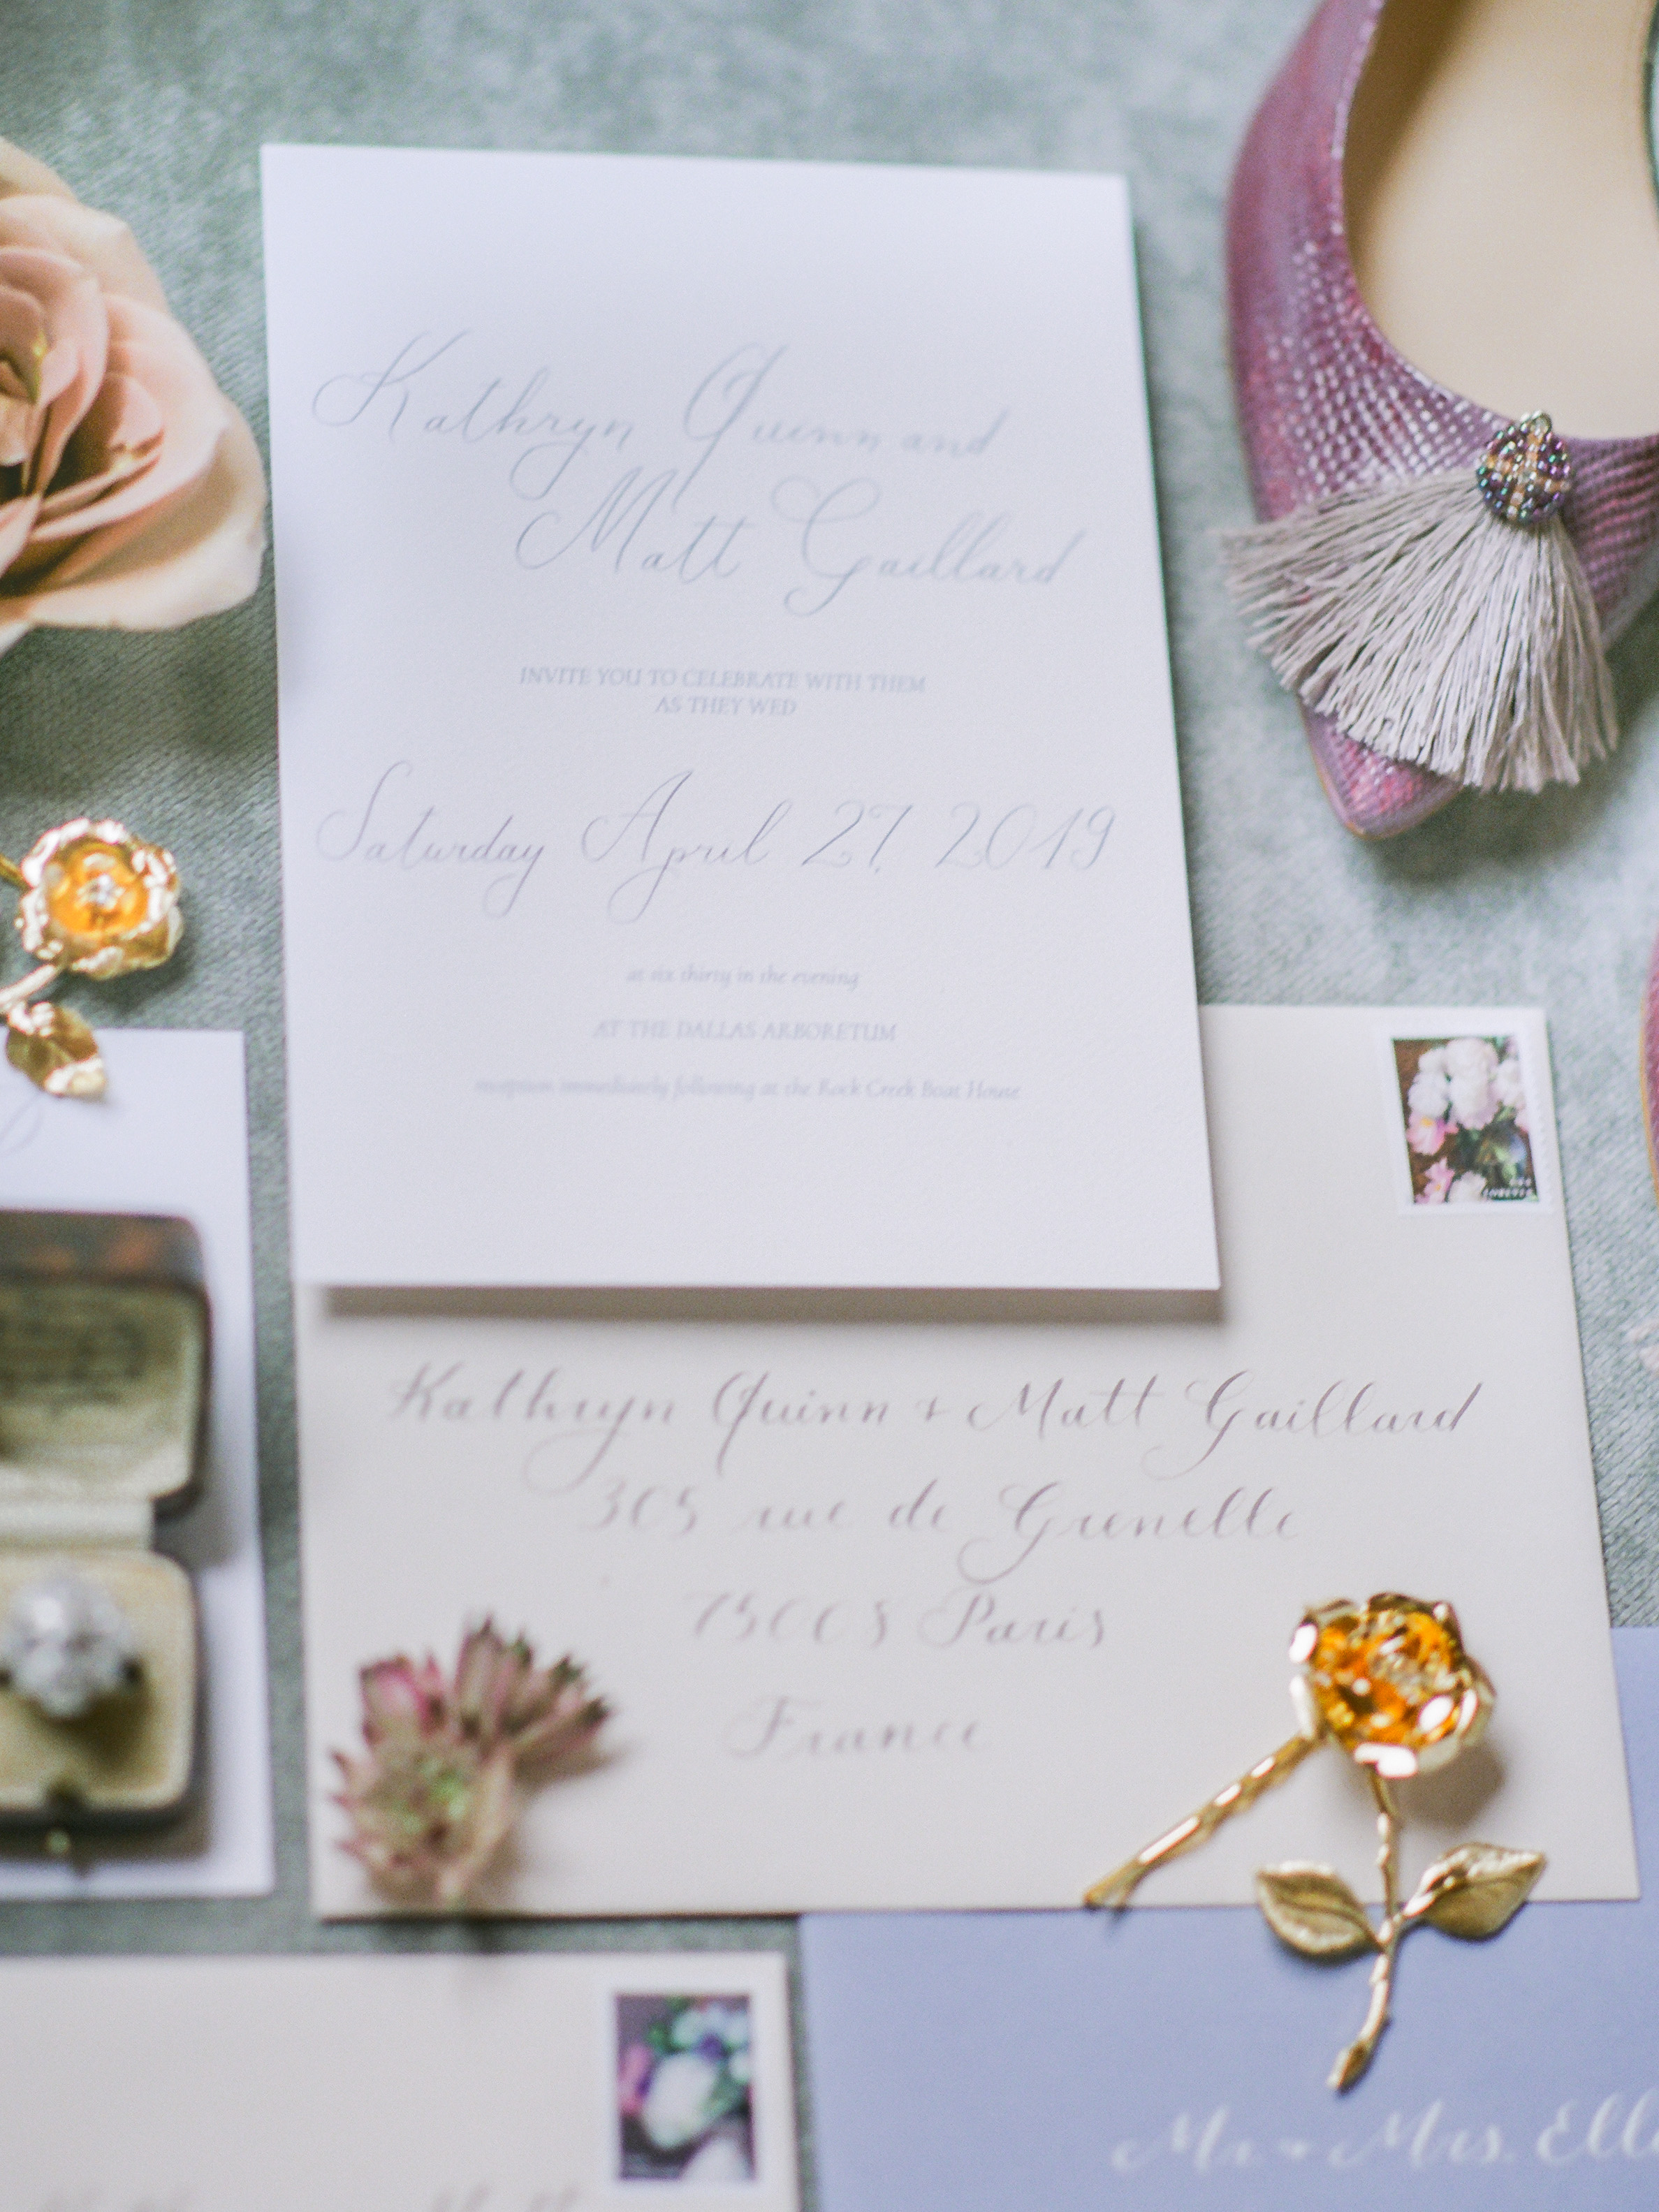 - Gorgeous details, like gorgeous shoes, a pinkish sandy rose, and gold floral bobby pins made for a stunning flat lay.